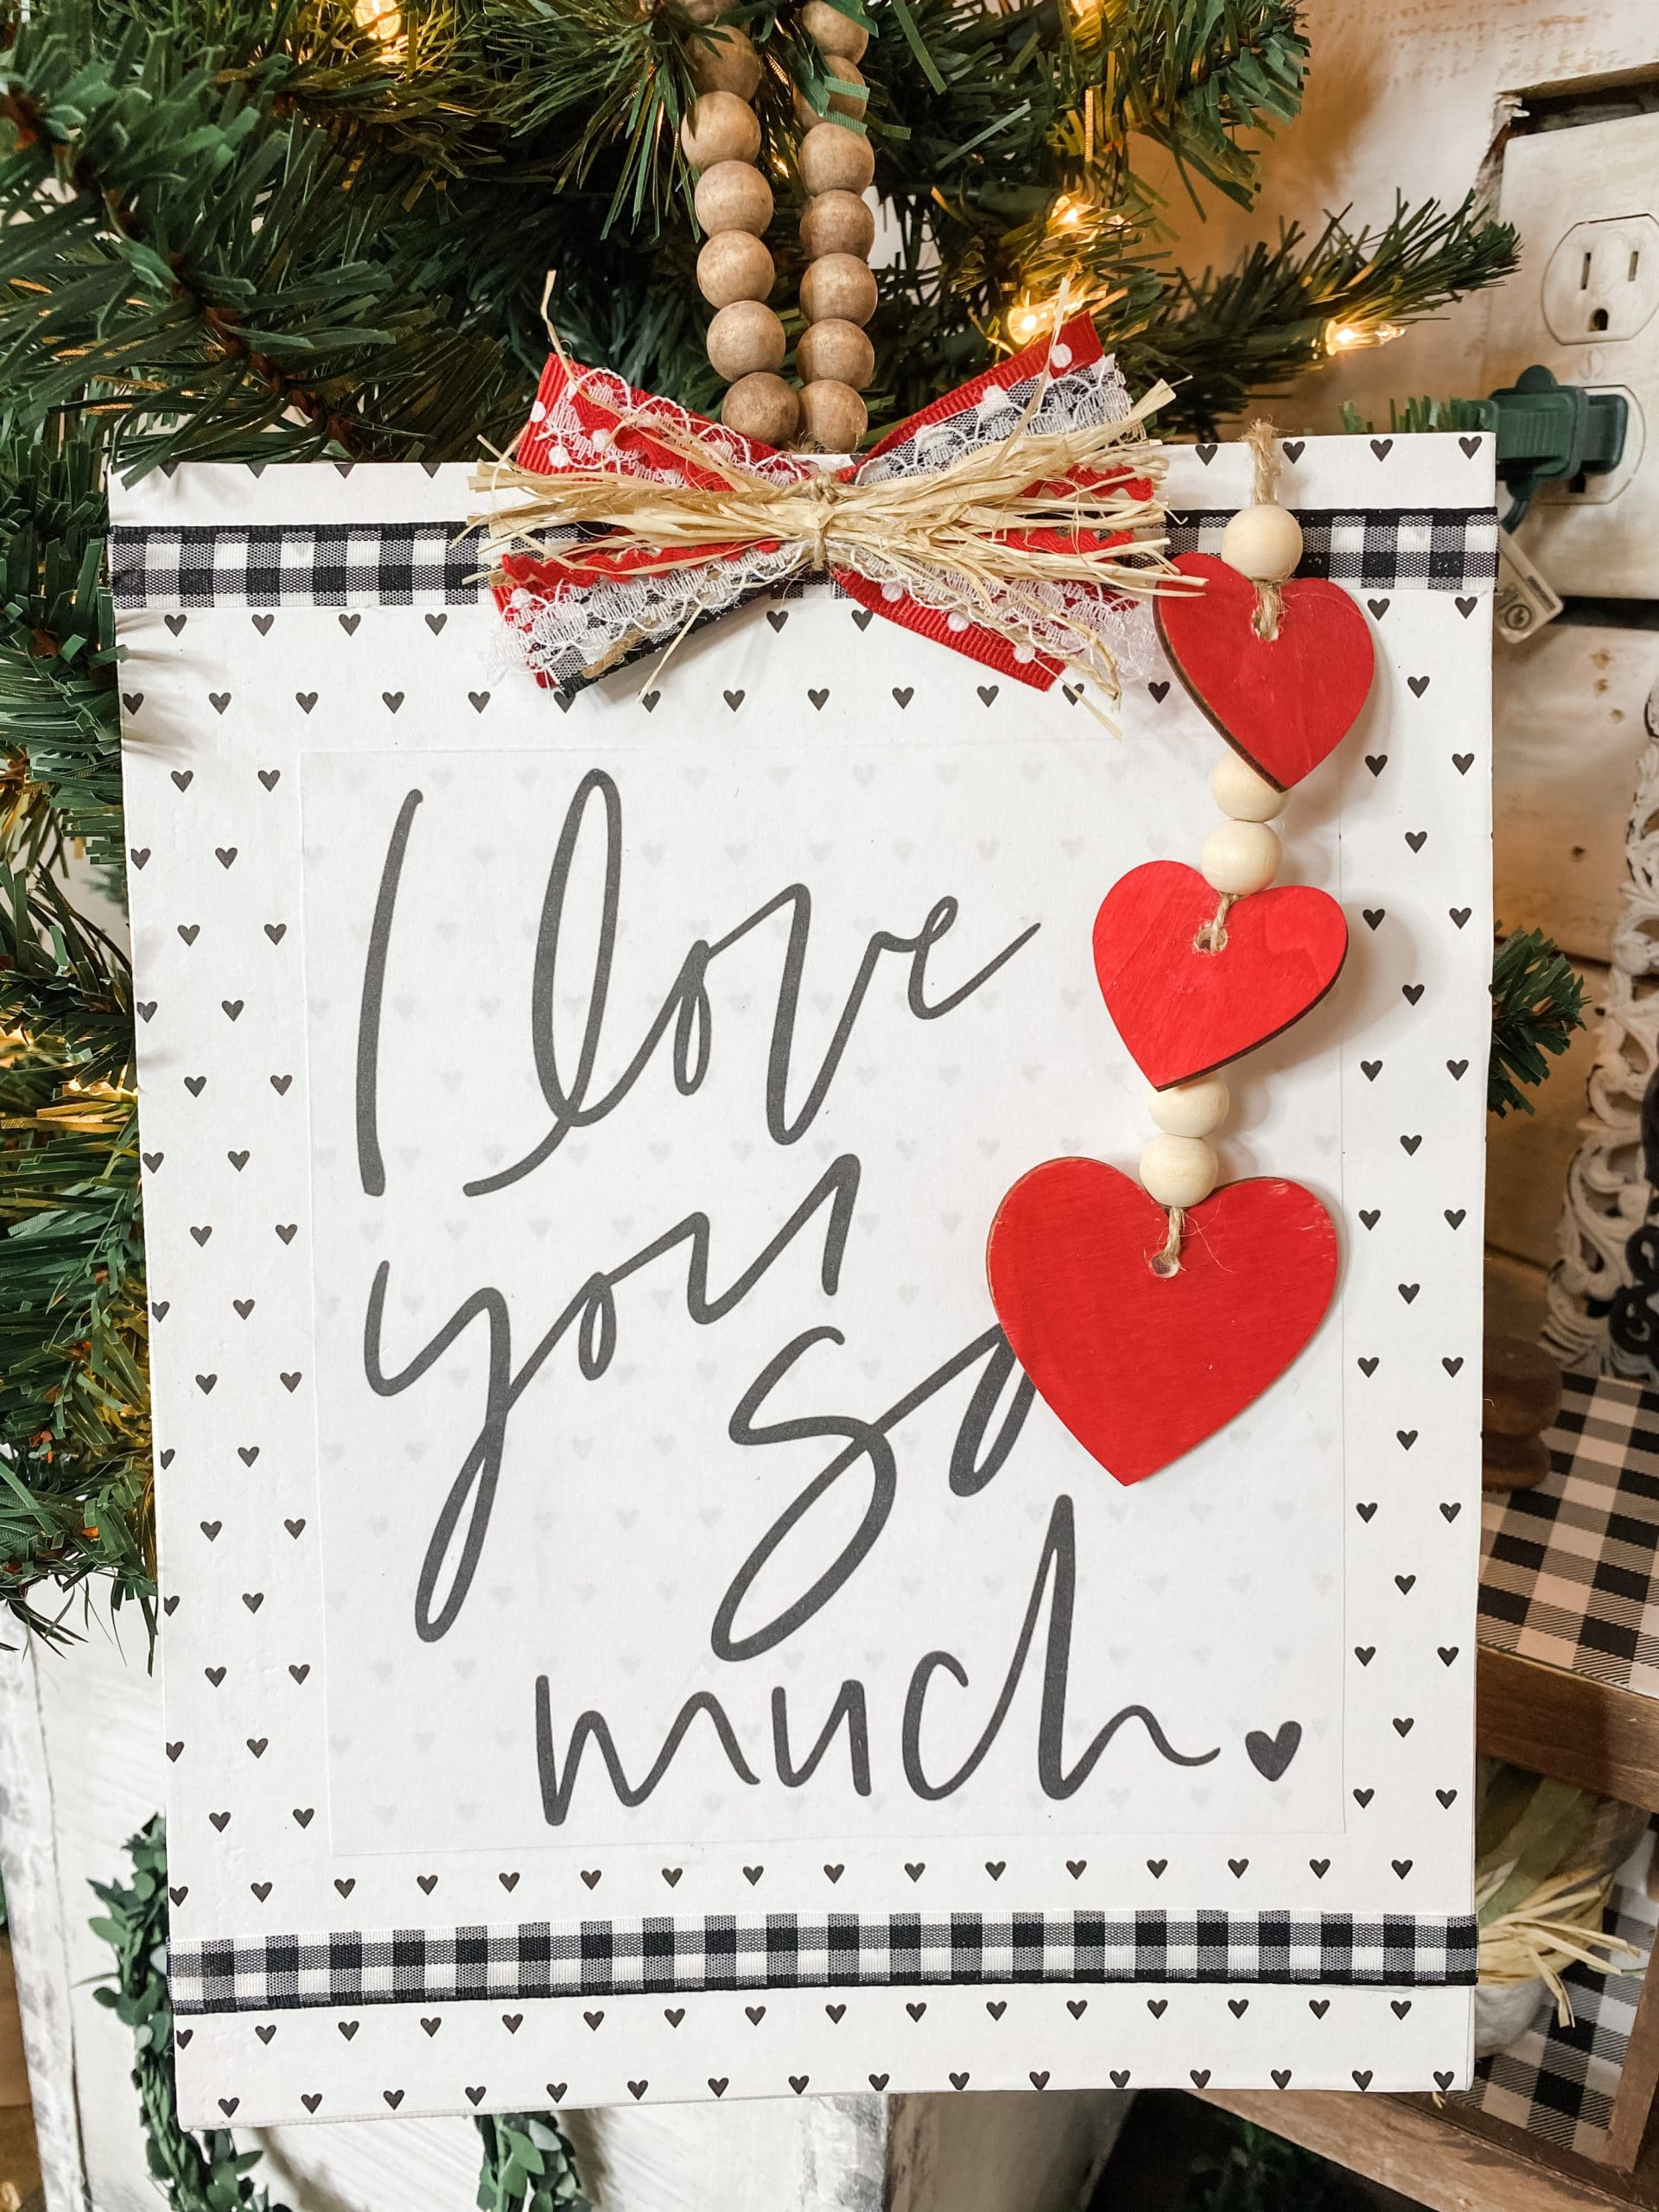 DIY Home Decor with FREE Valentine's Day Printable